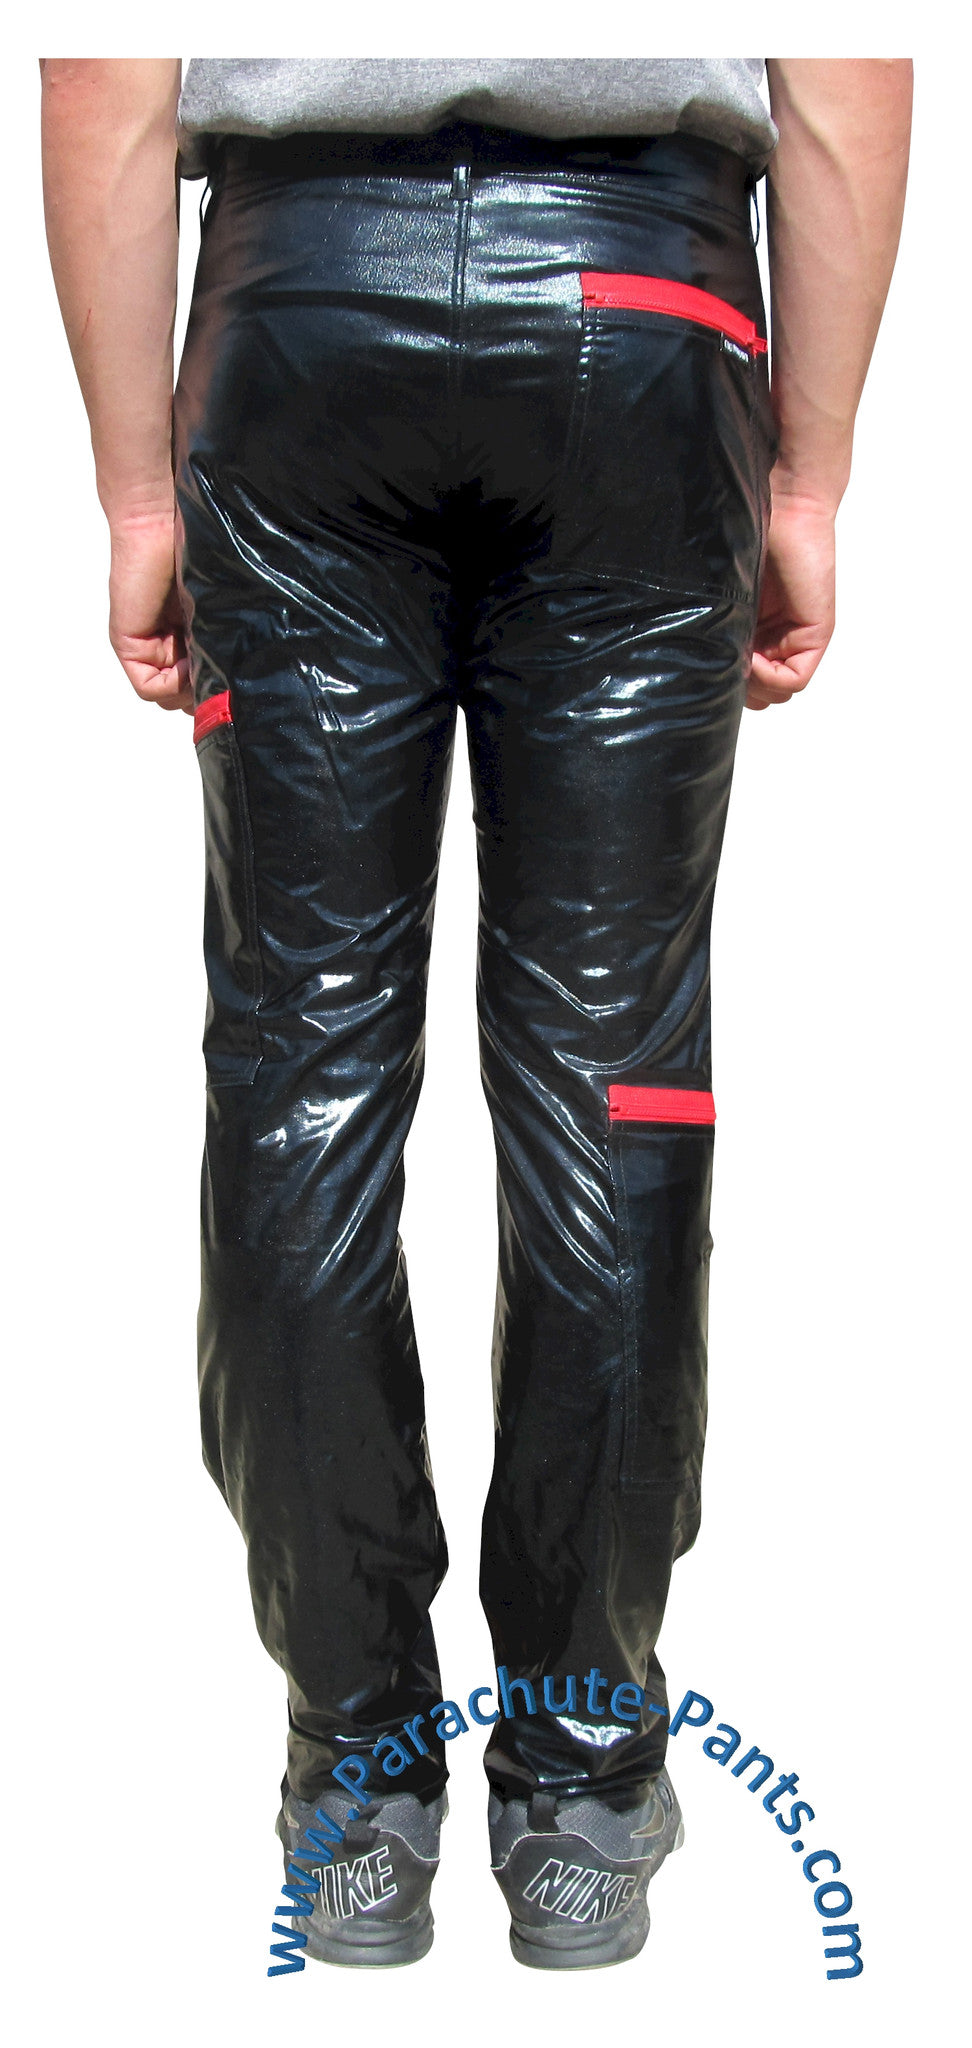 countdown black pvc parachute pants with red zippers the parachute